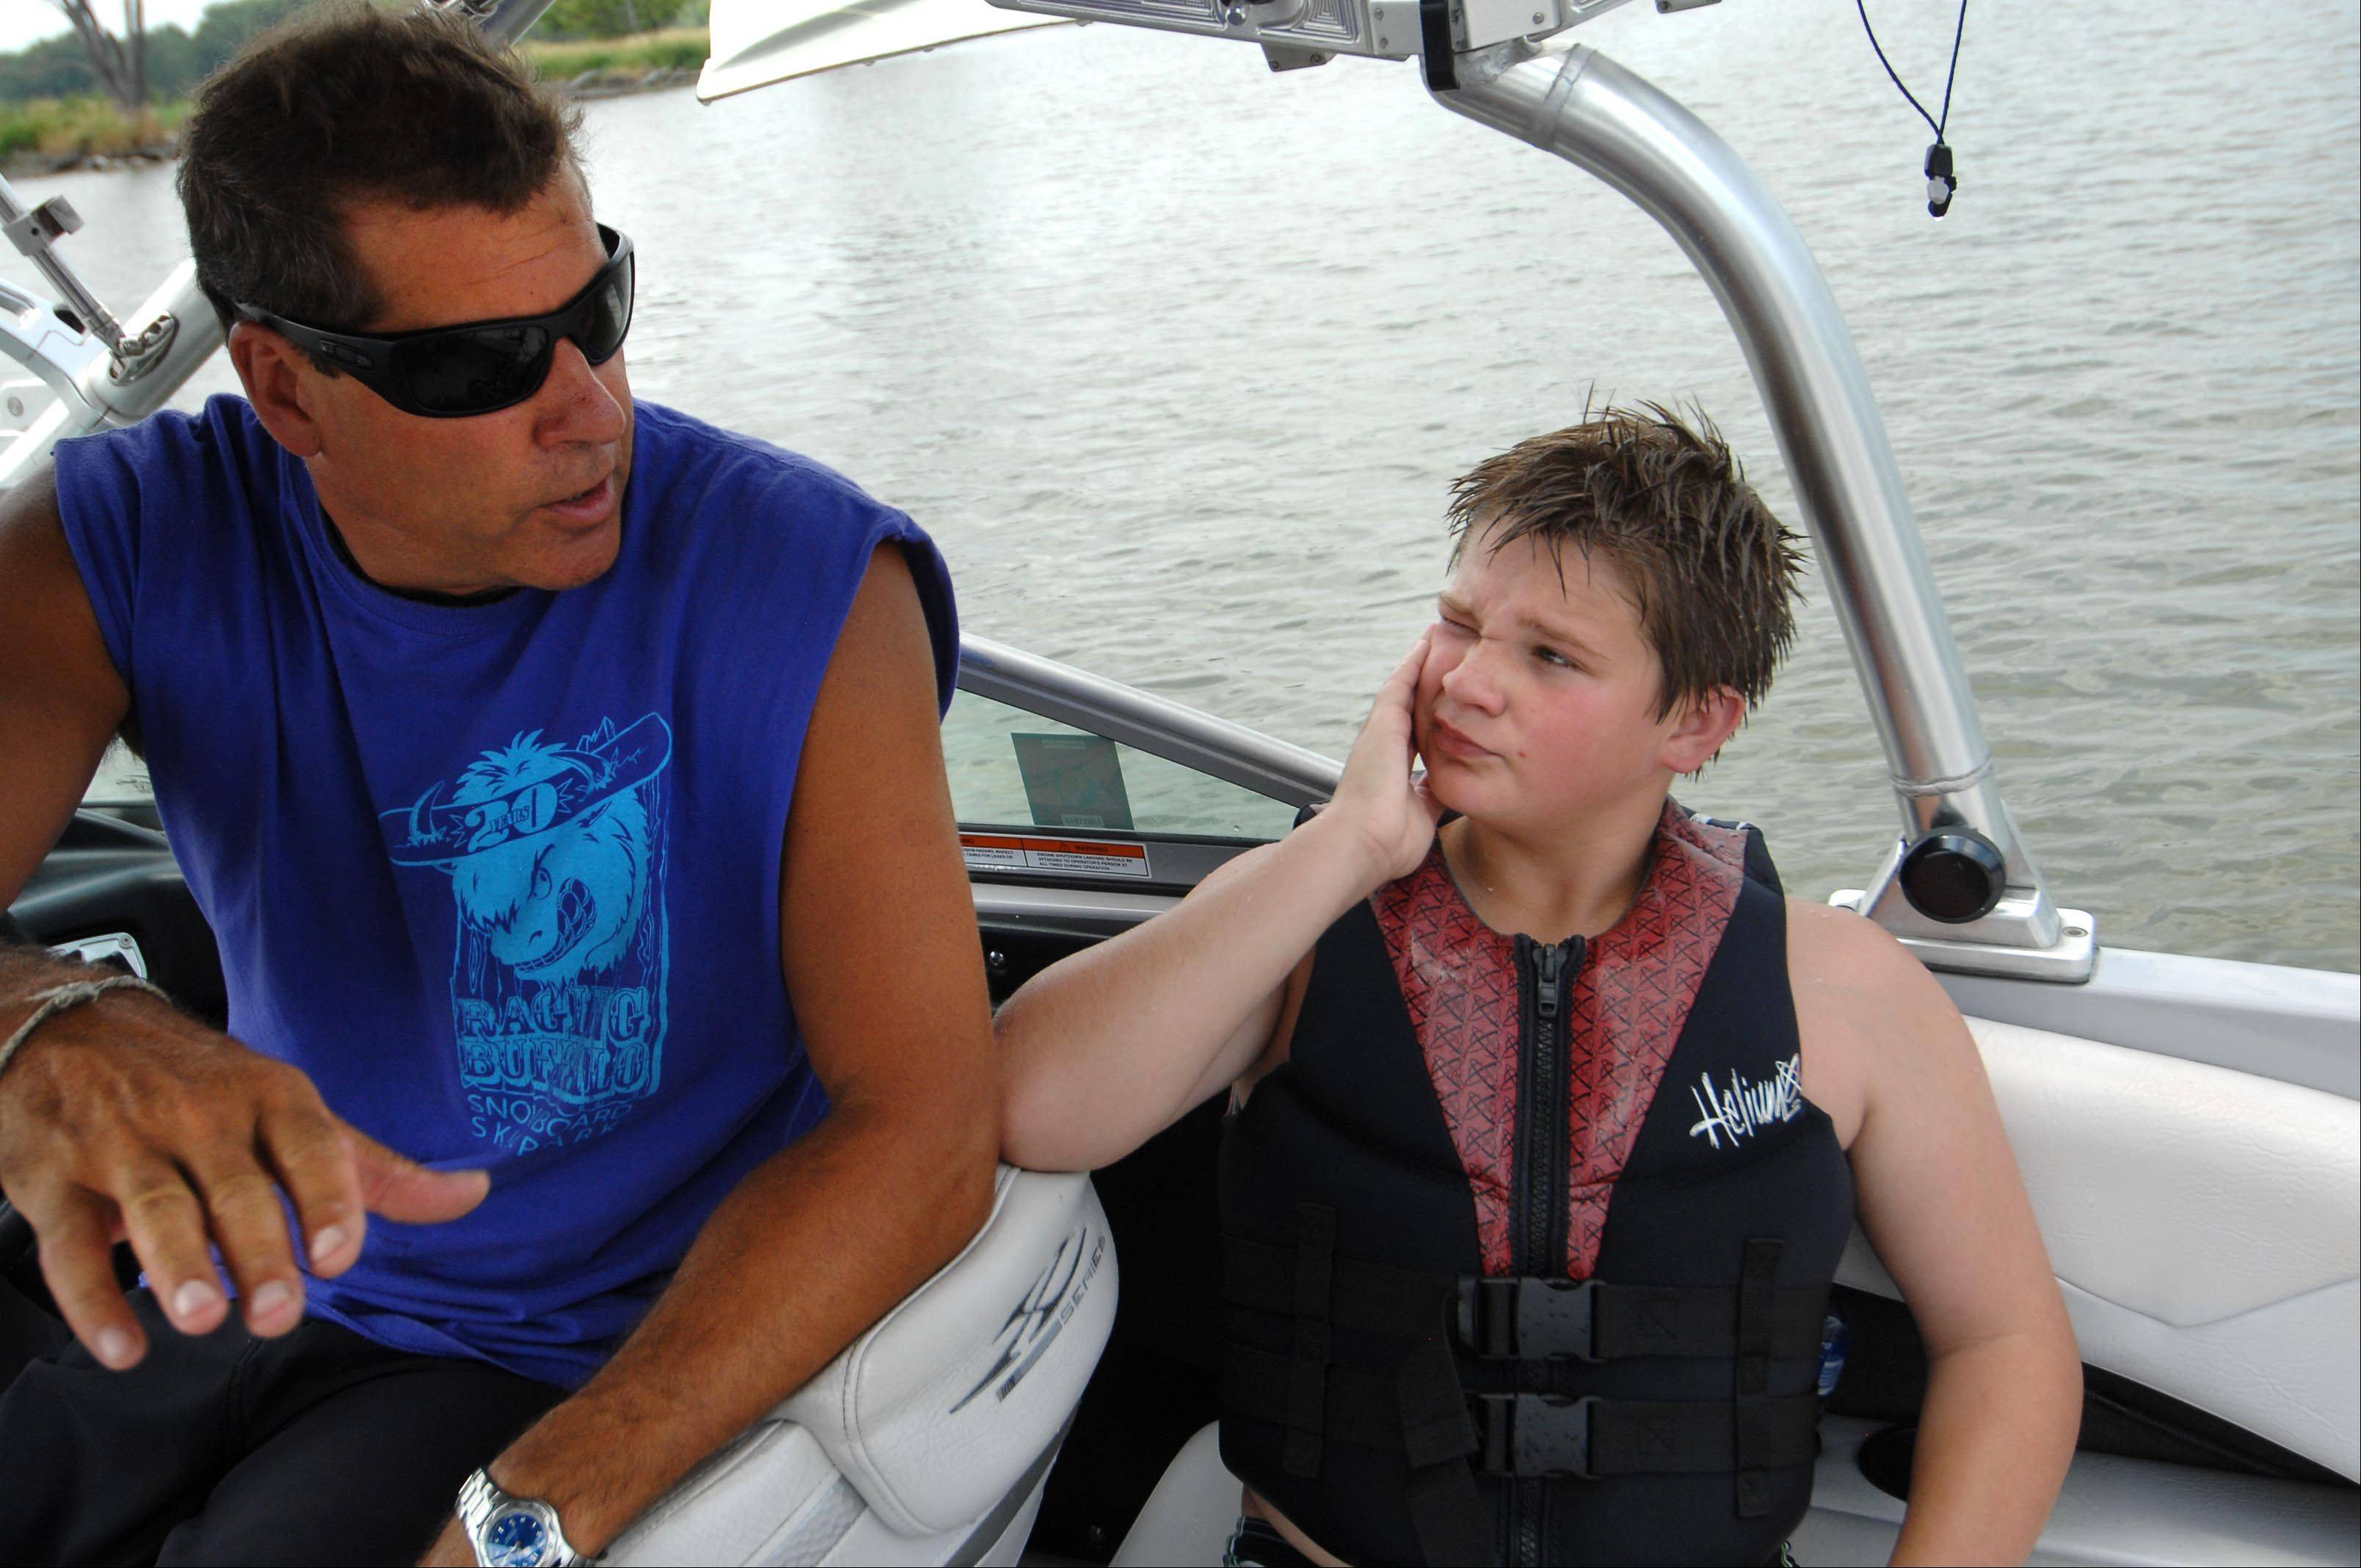 Keith Duck coaches Devin Patterson of West Dundee, as the 13-year-old takes a wake boarding lesson Monday on the Fox River near Cary. Duck operates the Raging Buffalo Wakeboard School during the summer season, and the Raging Buffalo Snowboard Park in Algonquin during the winter.